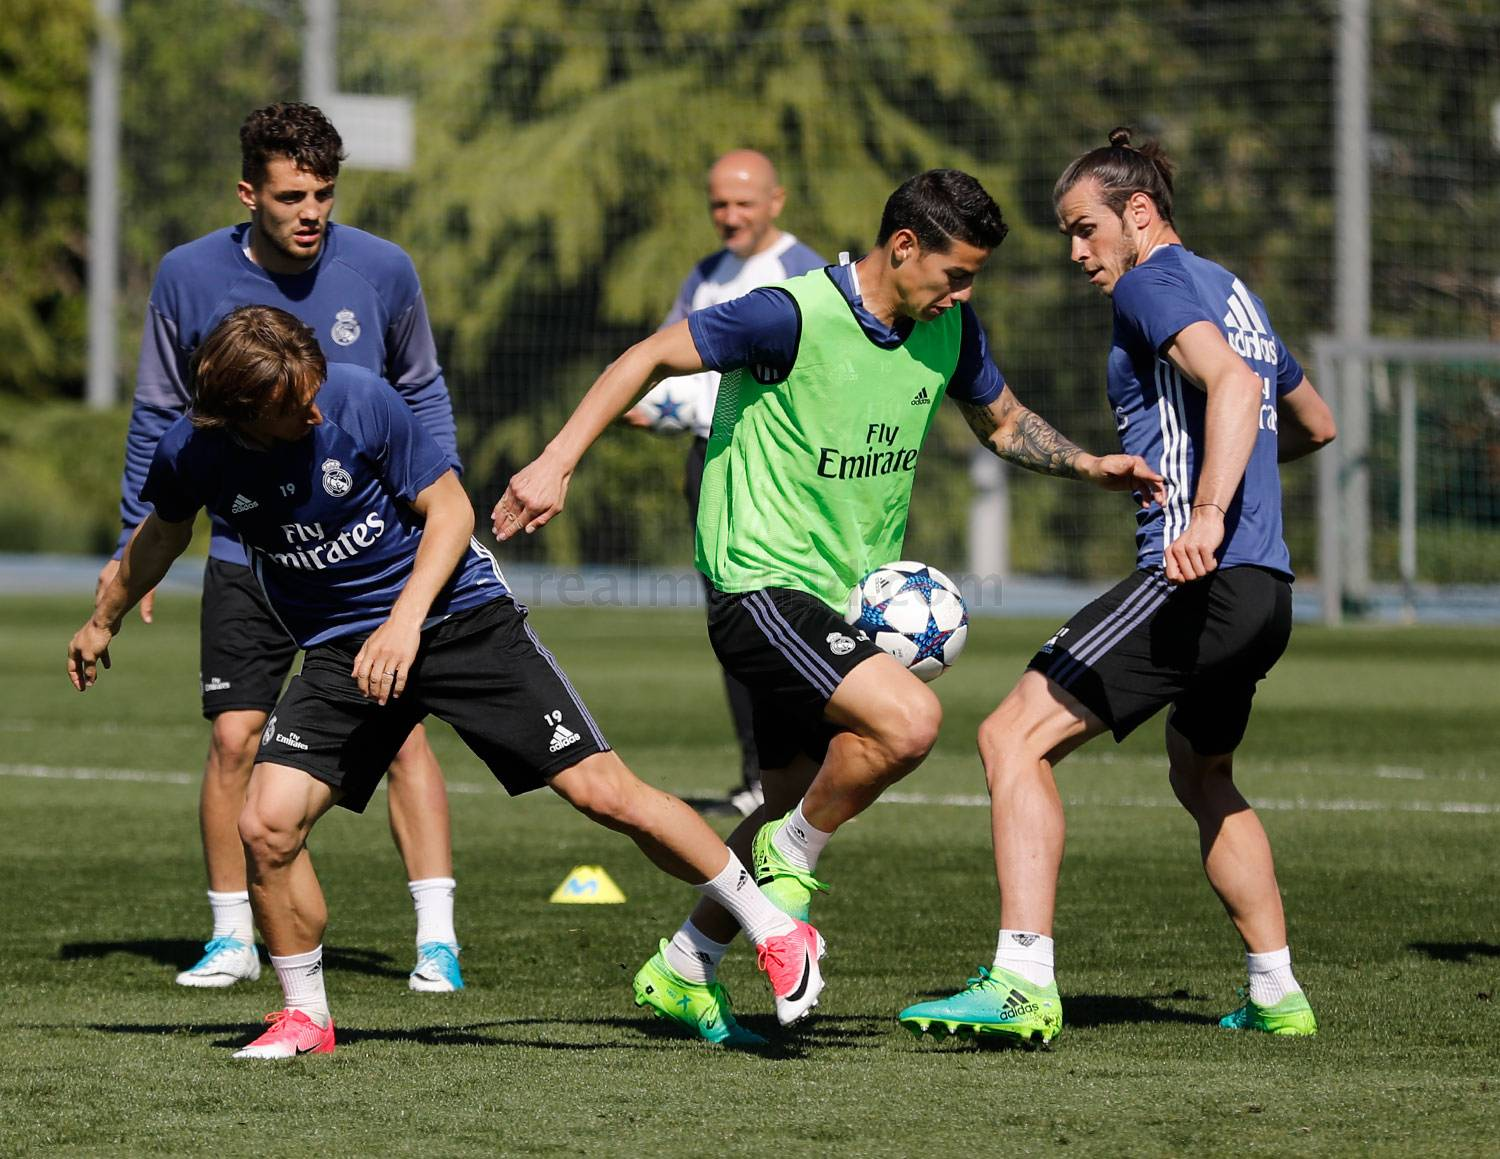 Real Madrid - Entrenamiento del Real Madrid - 10-04-2017